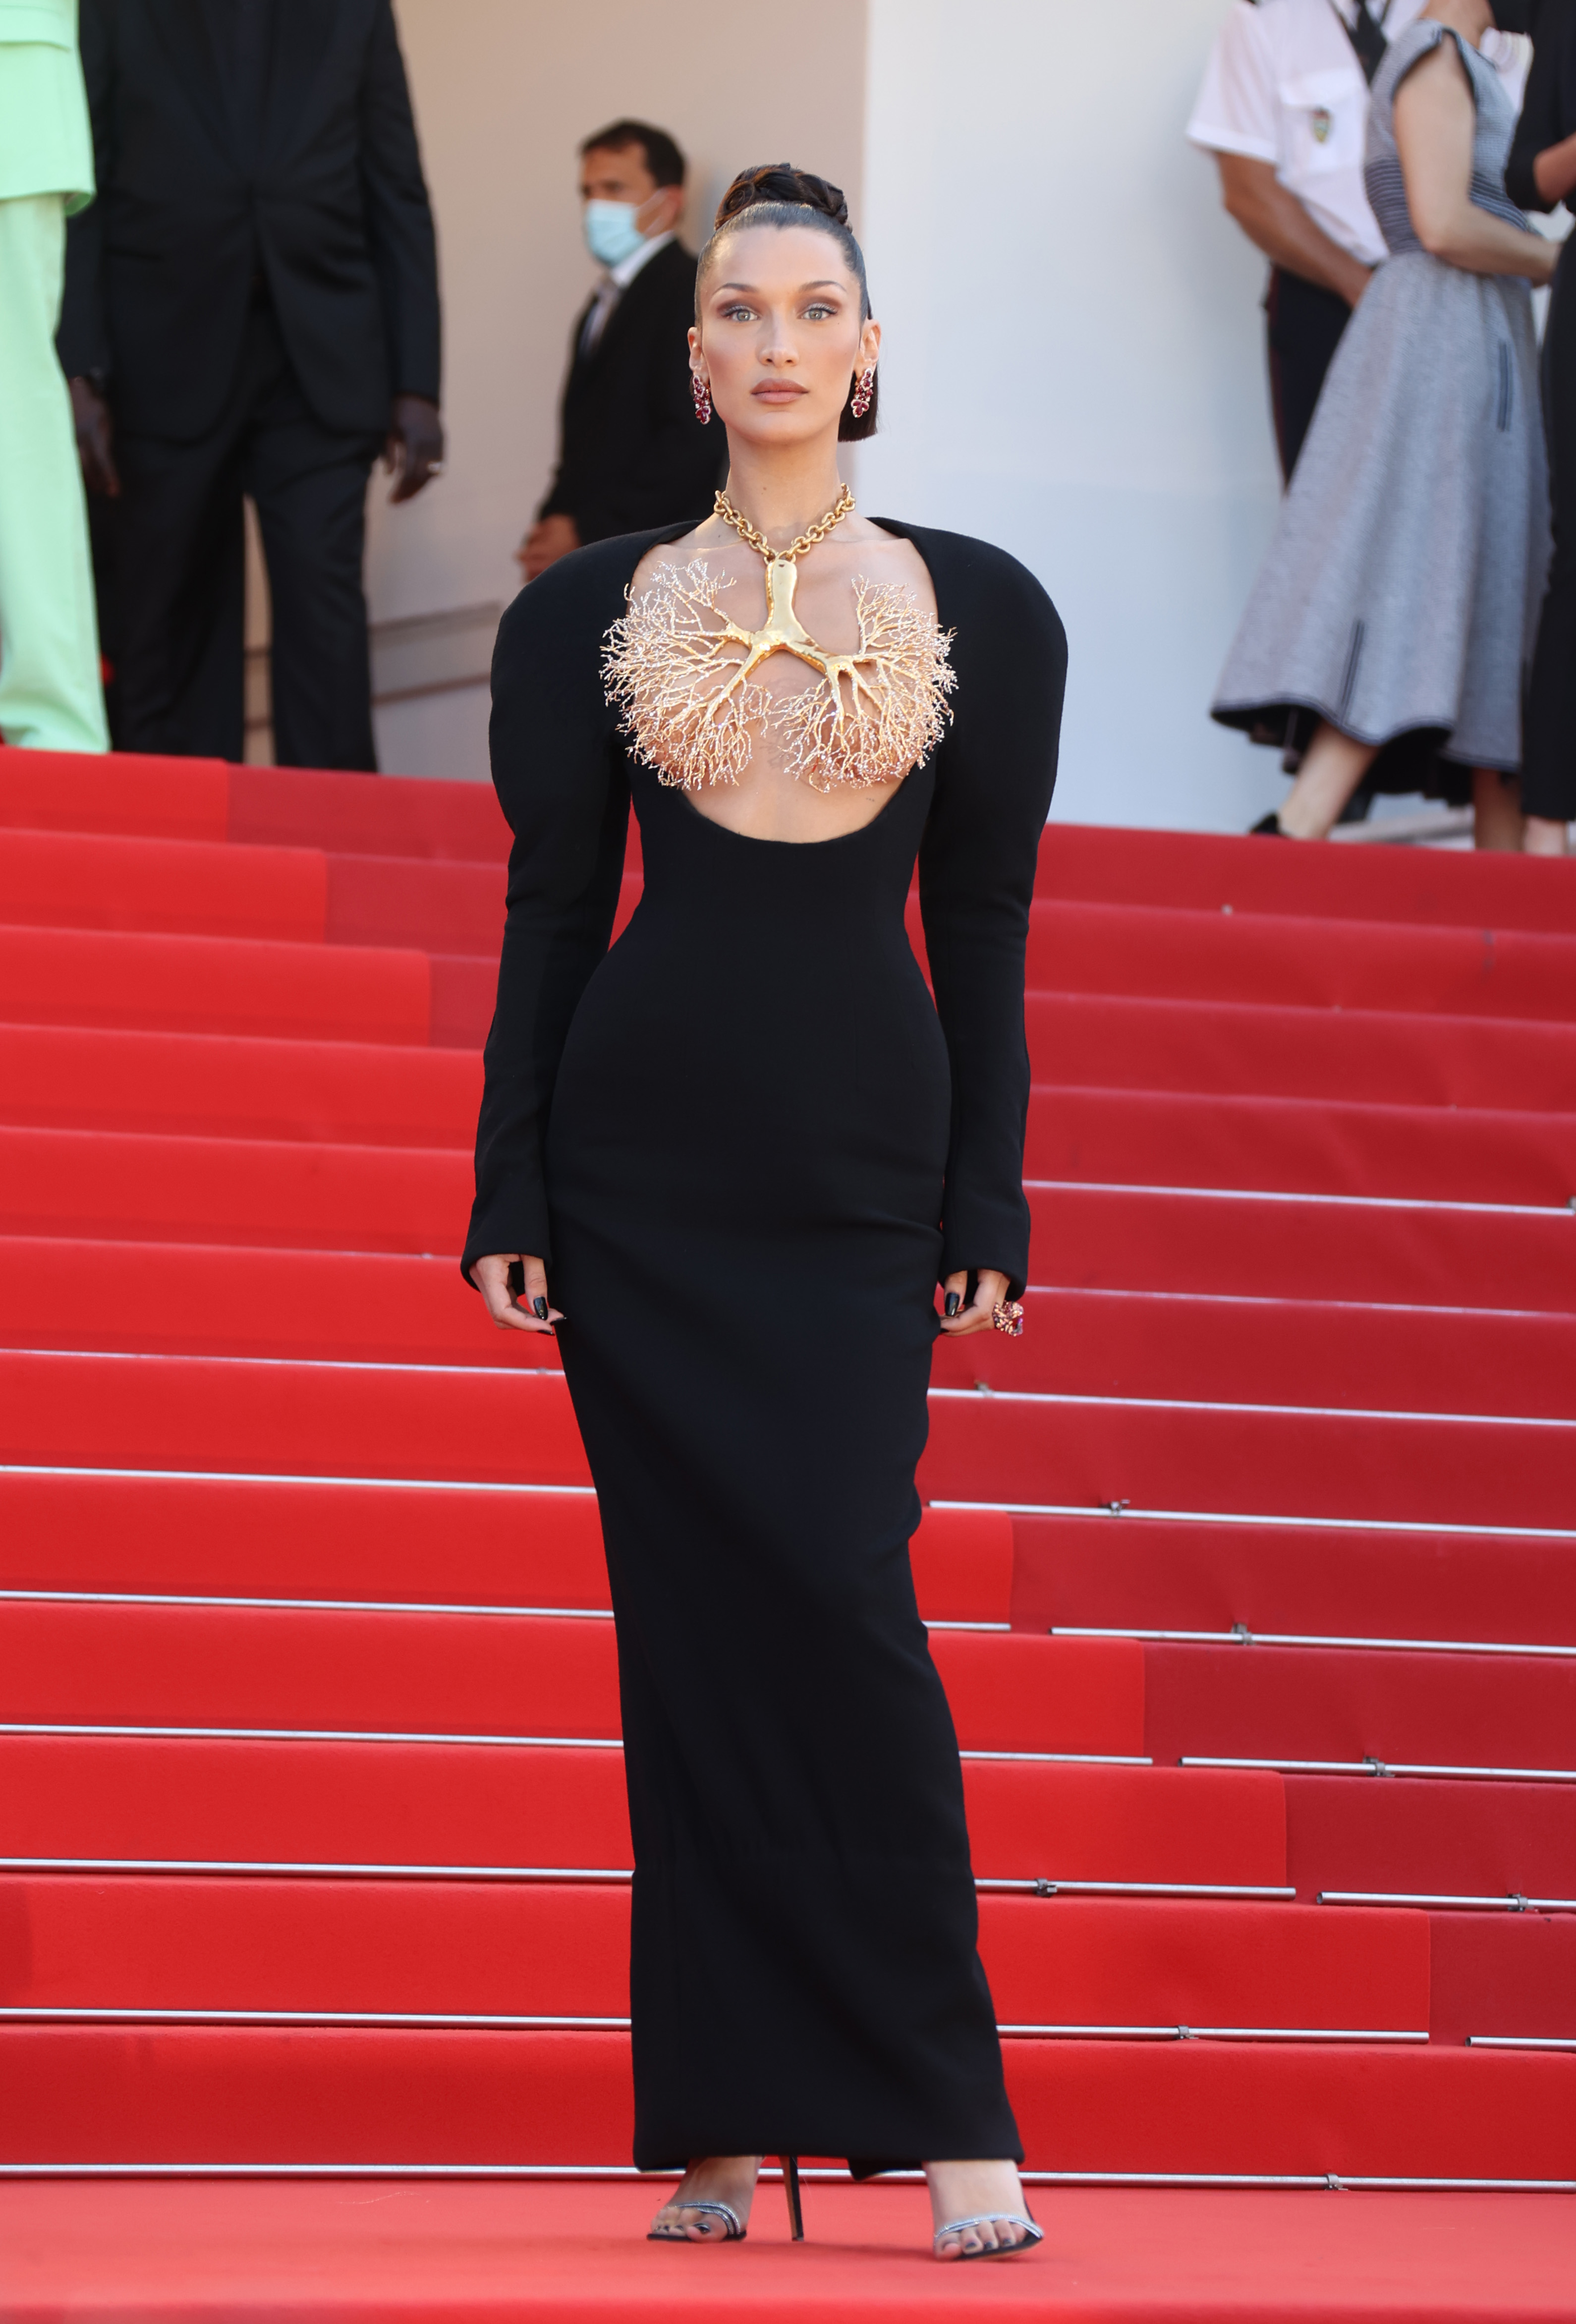 bella hadid wearing schiaparelli on the red carpet at cannes film festival 2021